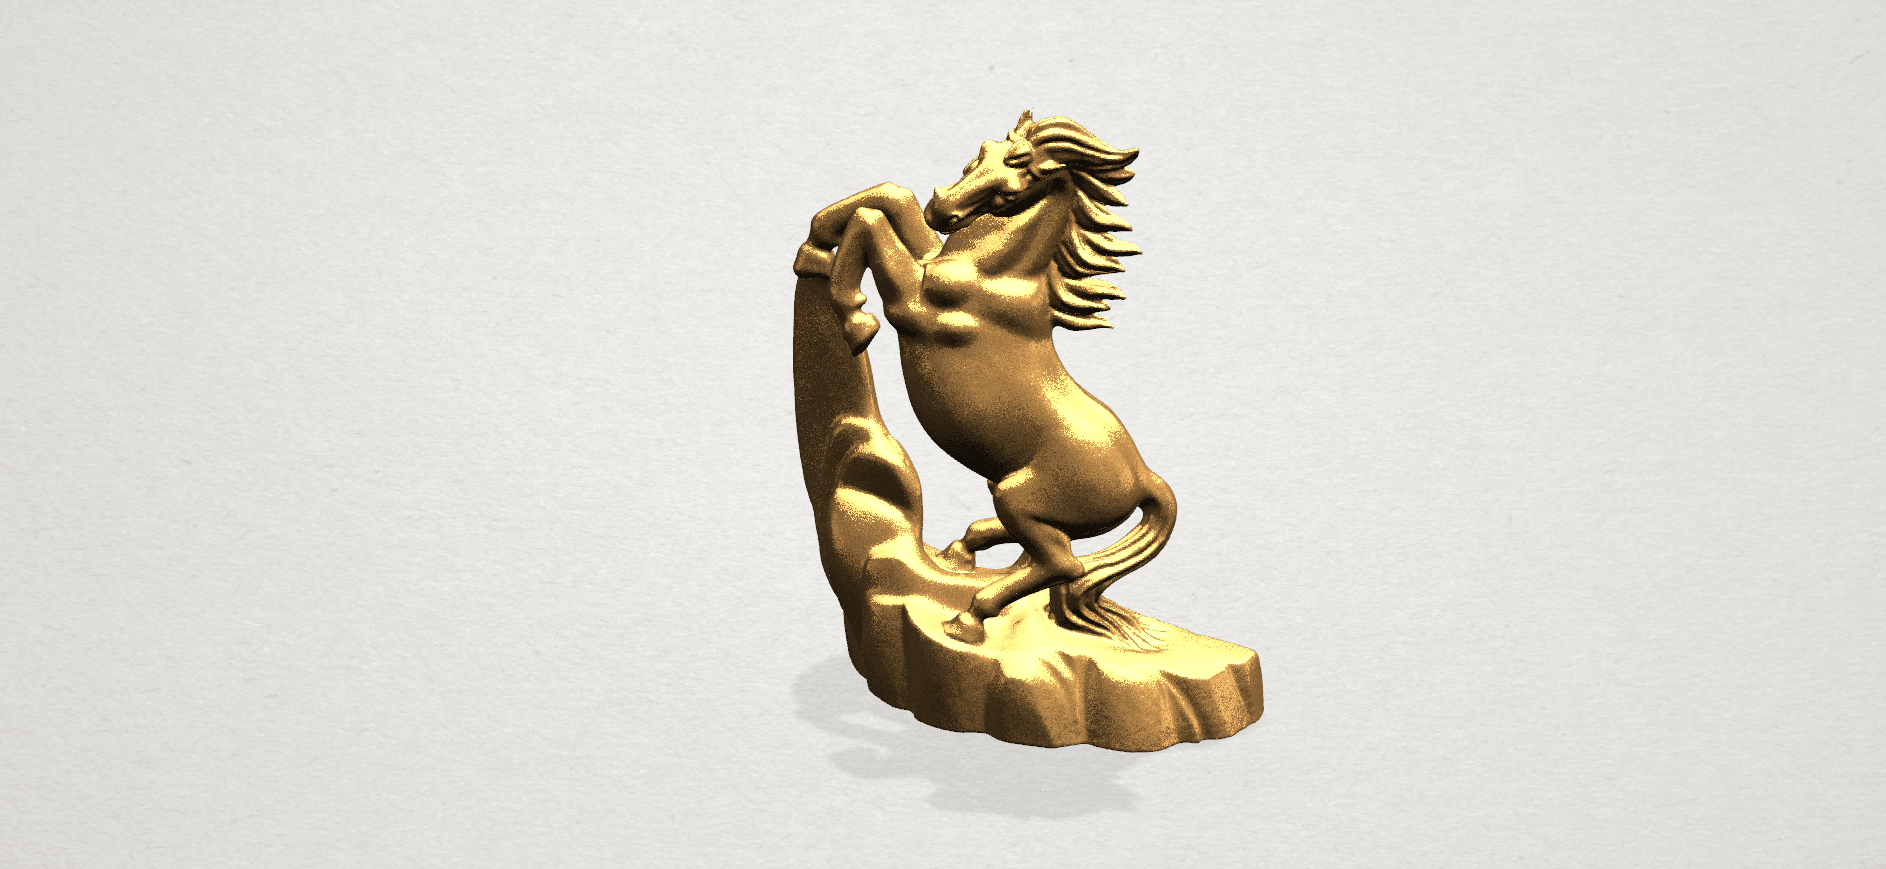 Horse - B02.png Download free STL file Horse 01 • 3D printing model, GeorgesNikkei